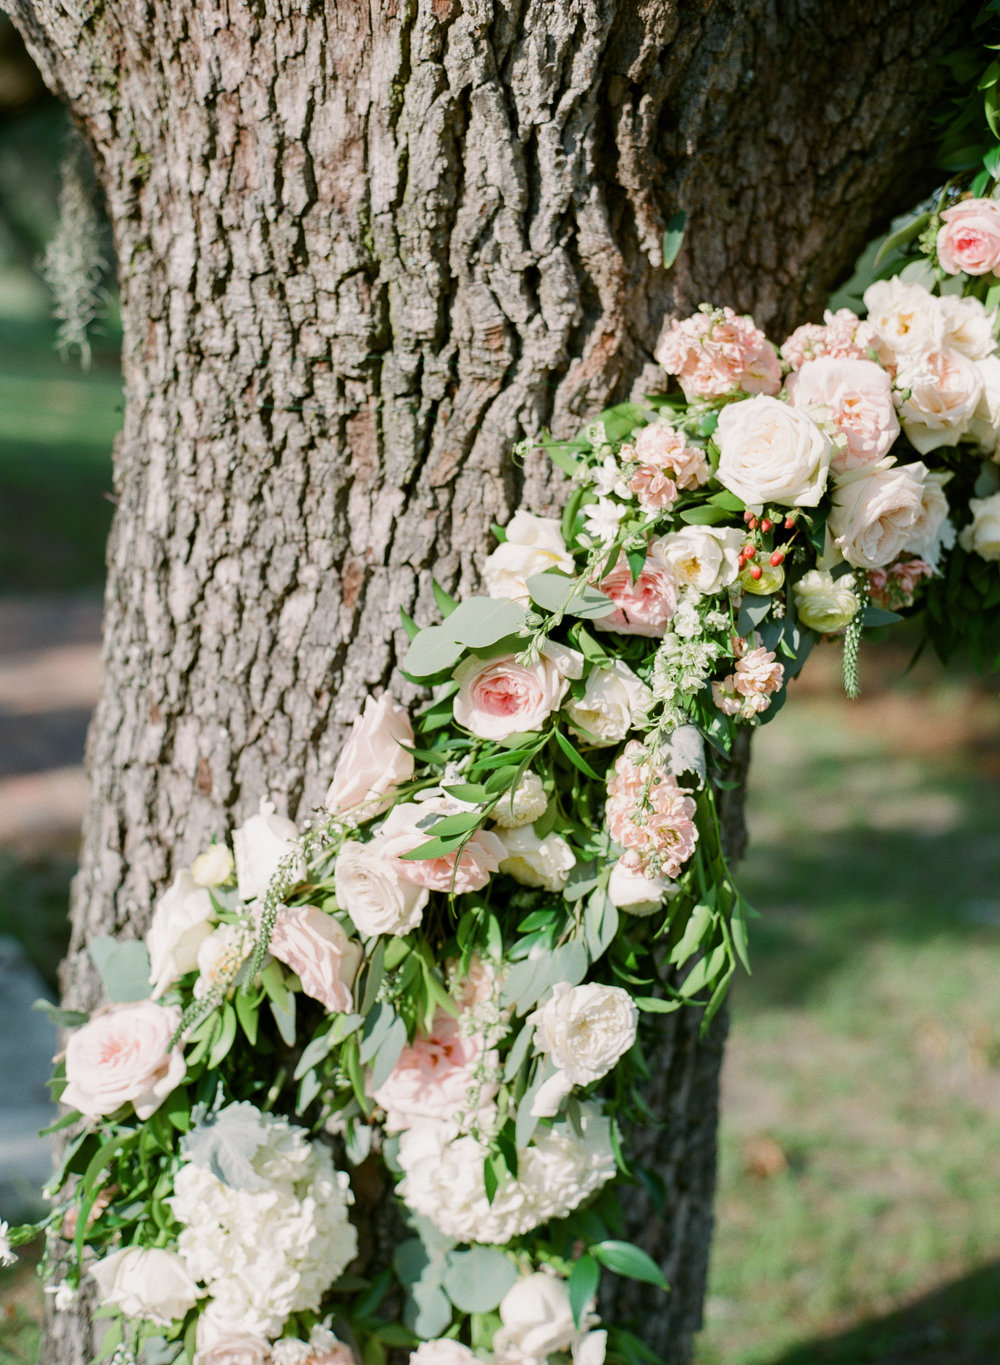 Floral Tree Magic - A floral tree installation is something I've dreamt of for years and bringing it to life with a color palette of the softest blushes and yellows with miles of greenery felt like something straight out of a fairytale.Photography:The Happy BloomLocation:BethesdaDress:Blush by Hayley Paige